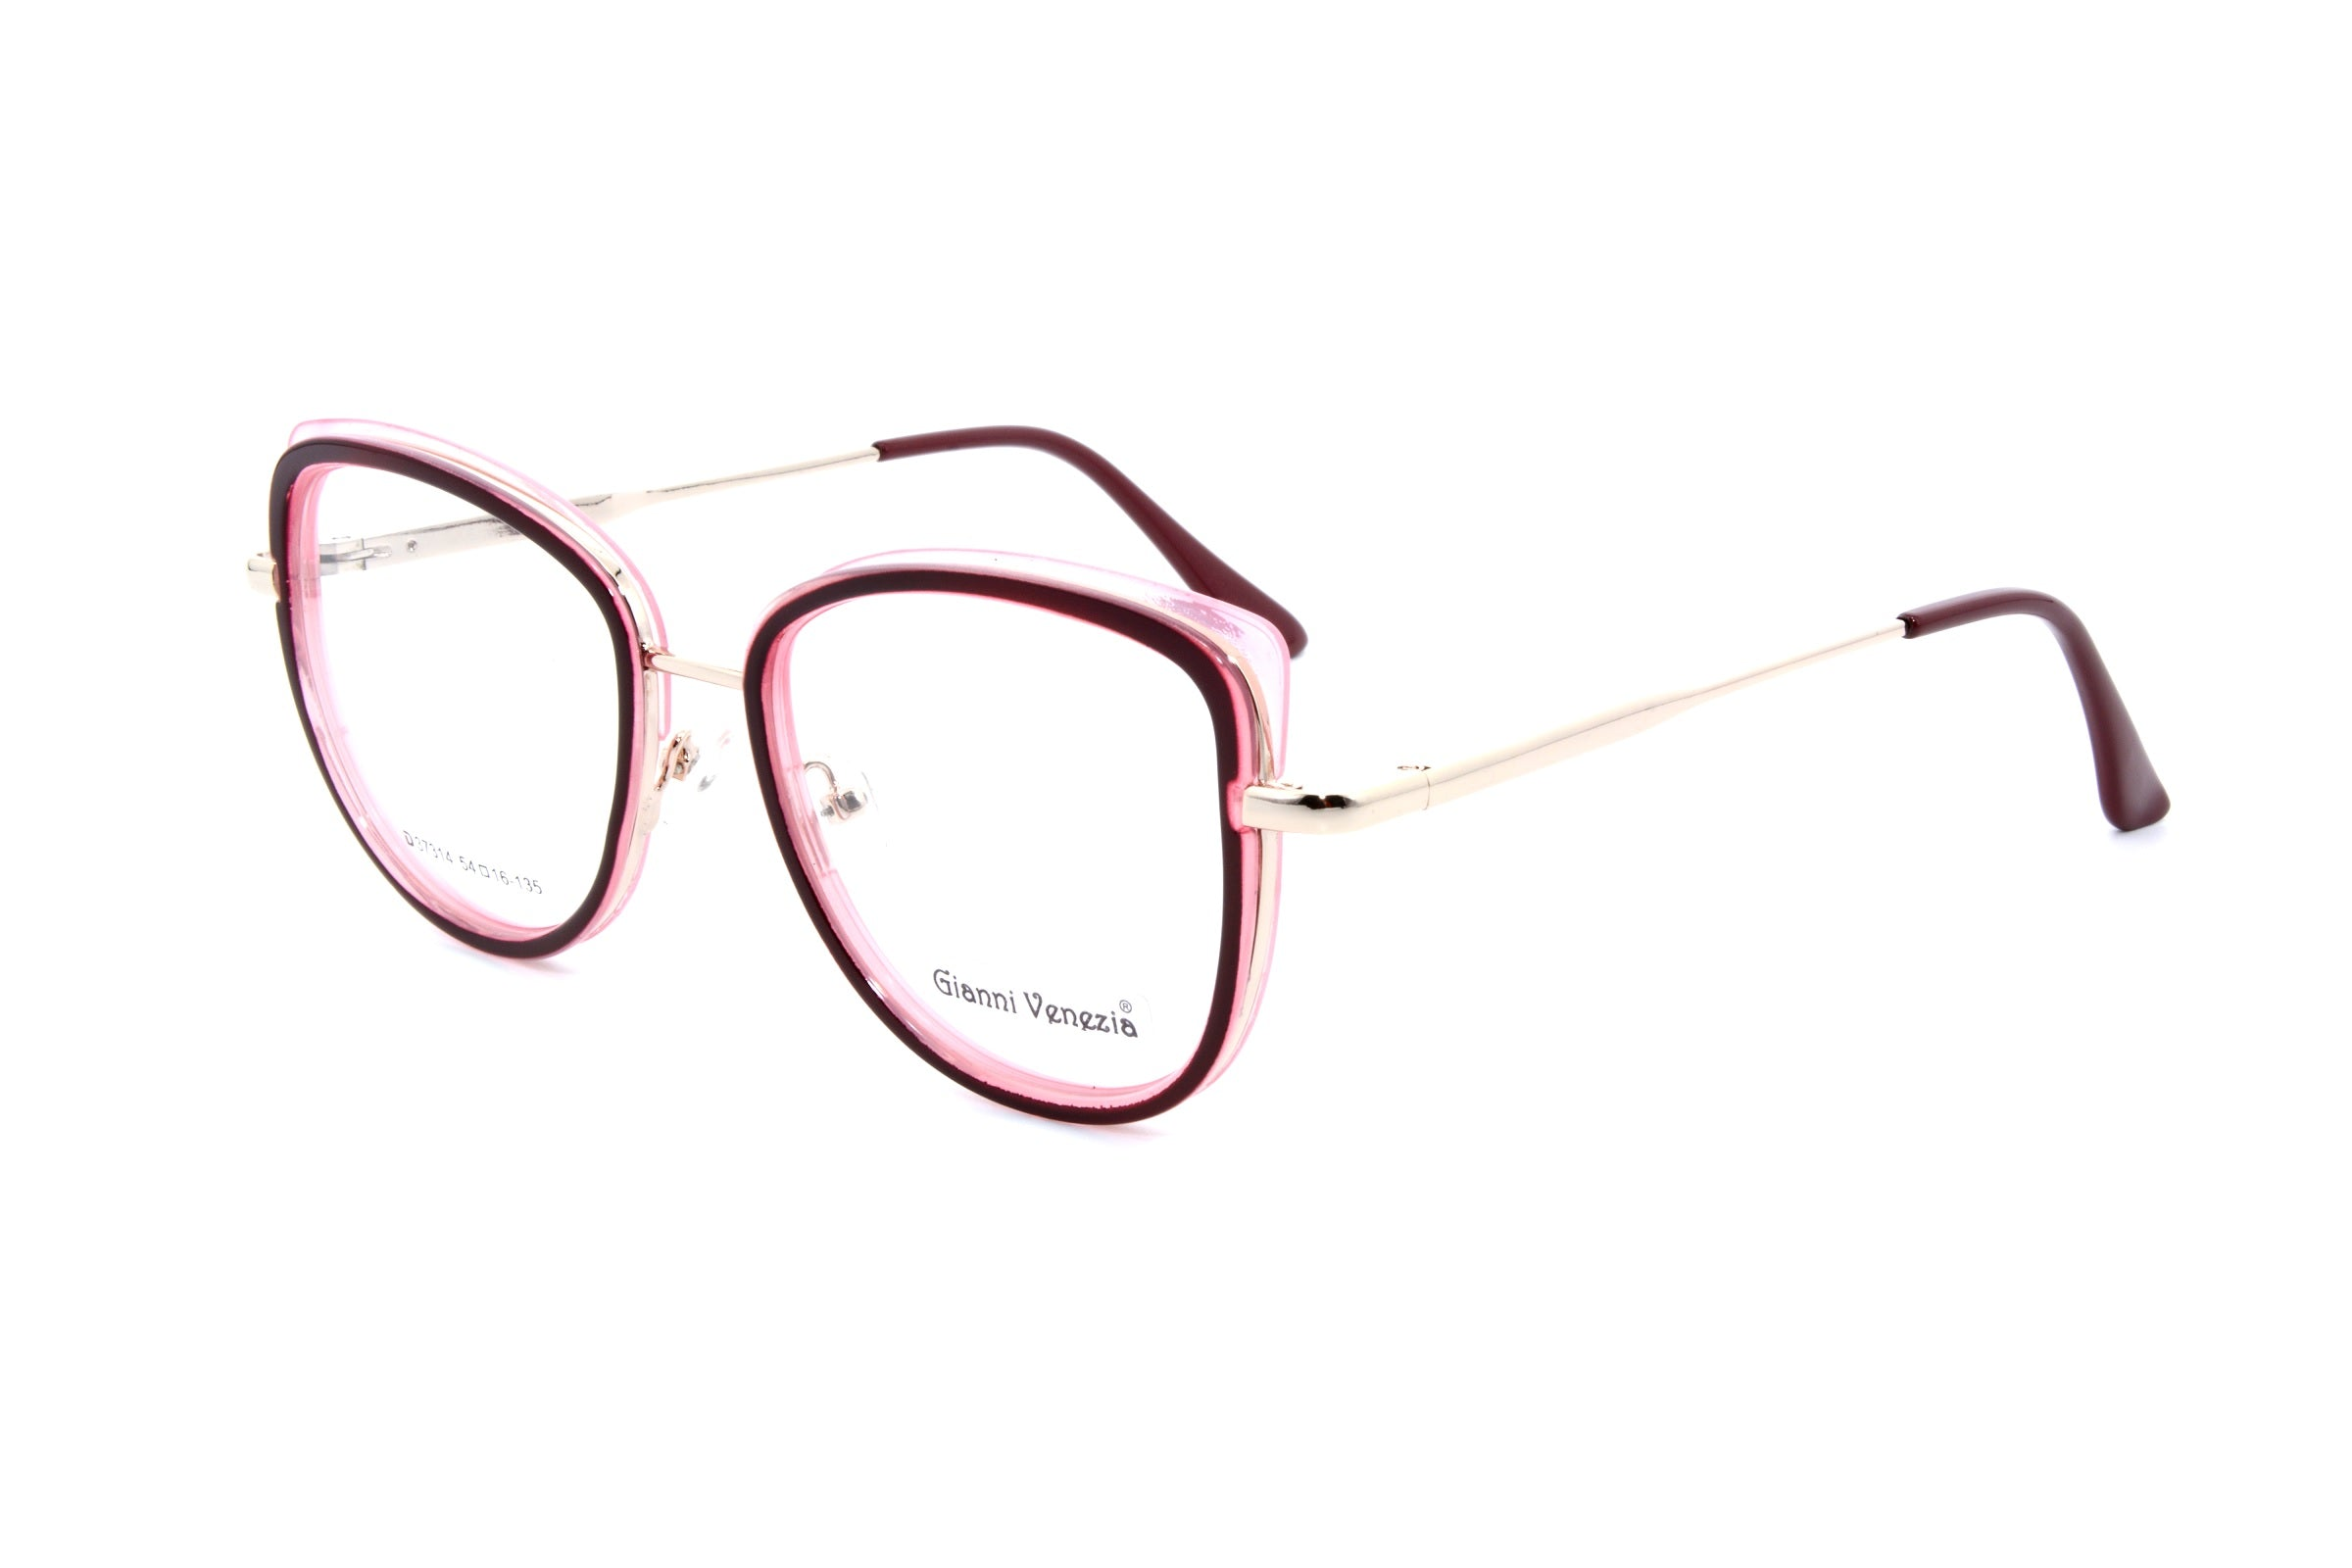 Gianni Vennezia eyewear 37314, C3 - Optics Trading